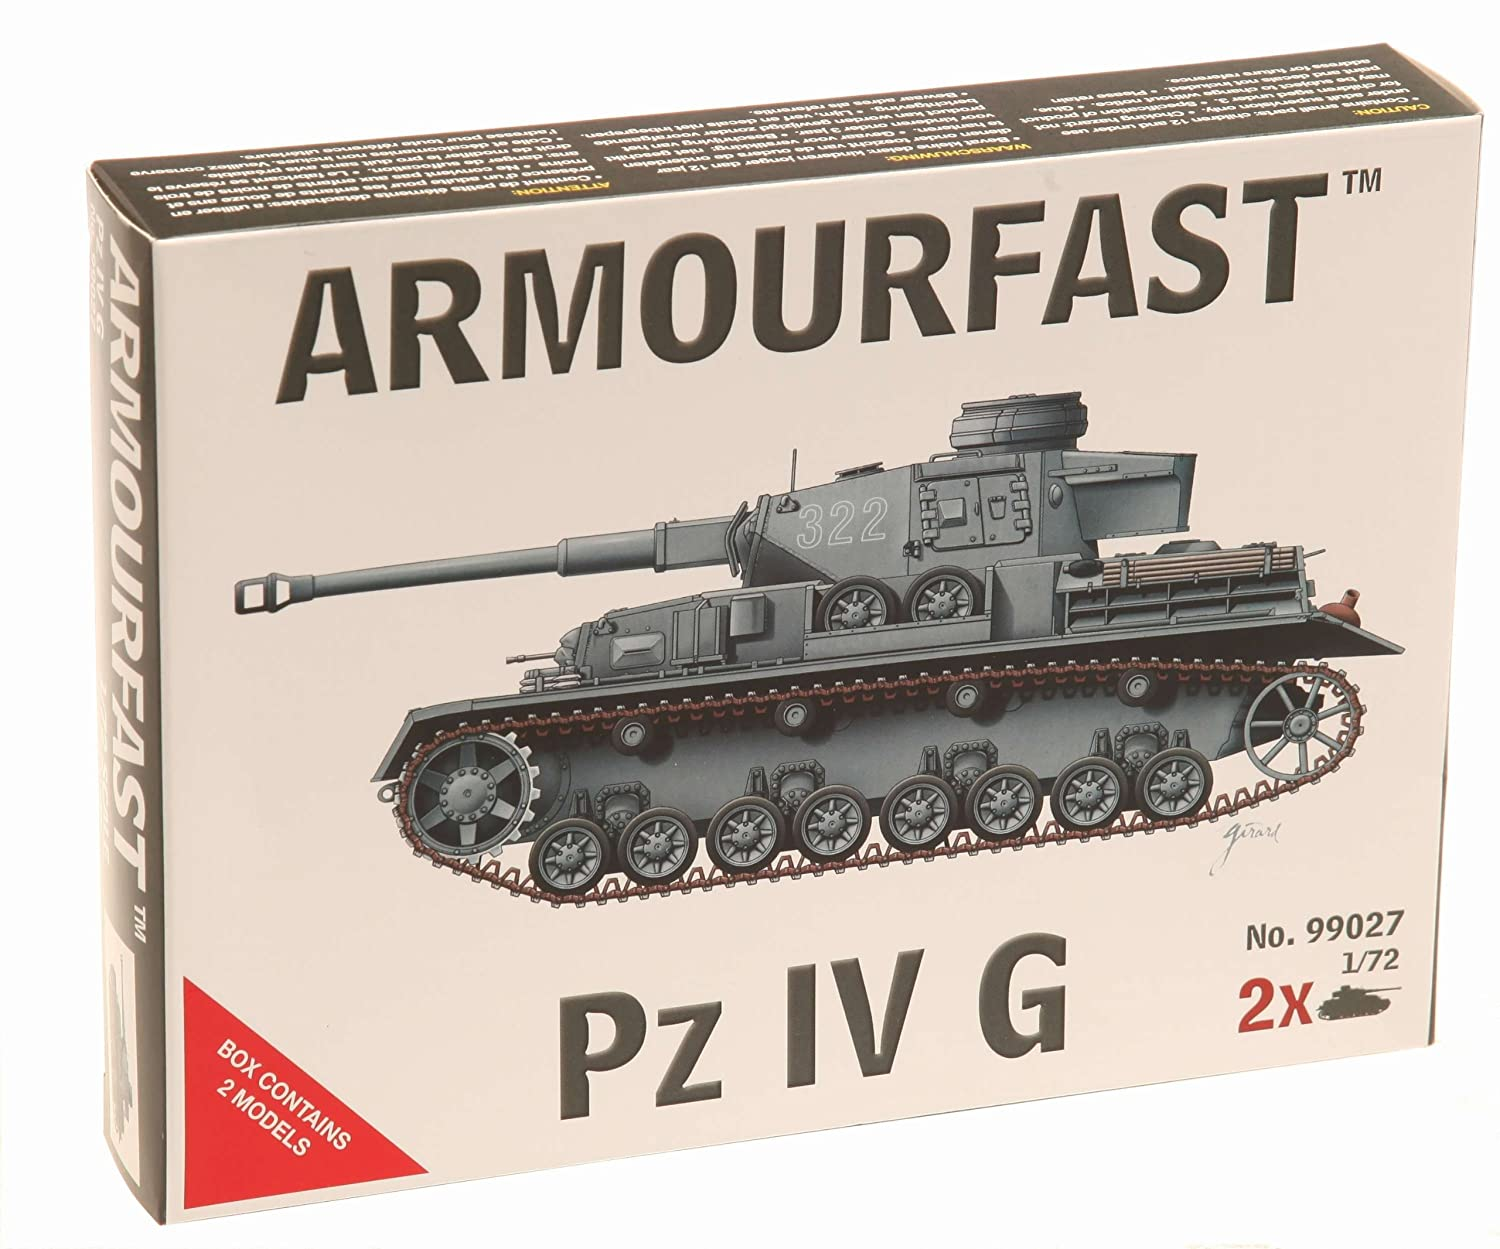 Armourfast tanks and military vehicles model kits in 1:72 scale 33 models